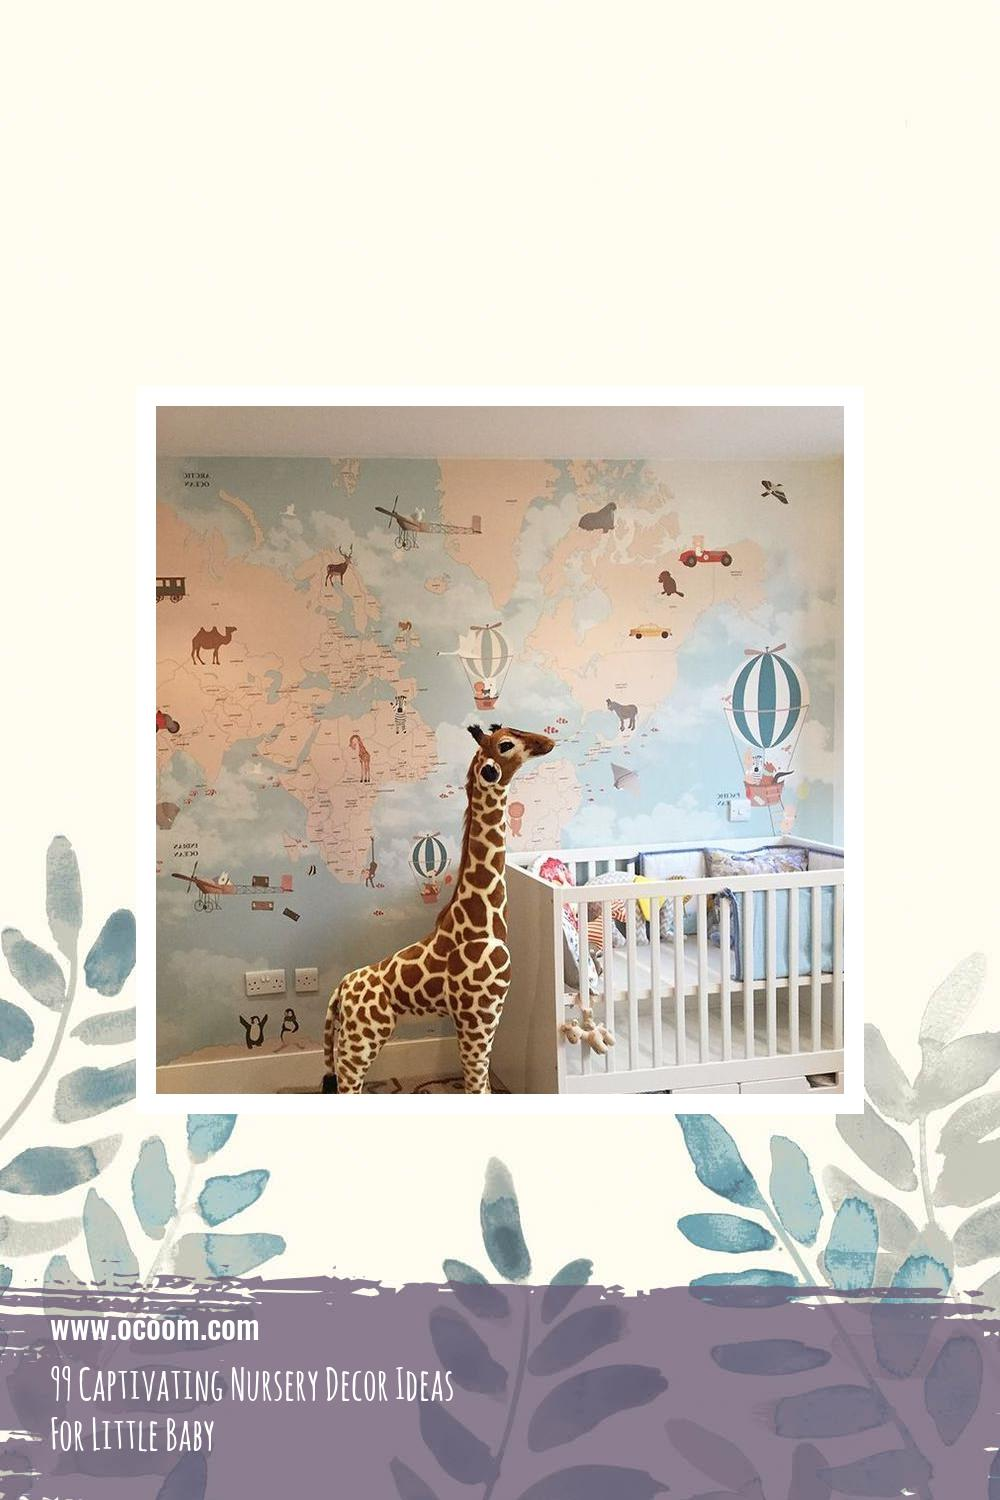 99 Captivating Nursery Decor Ideas For Little Baby 8